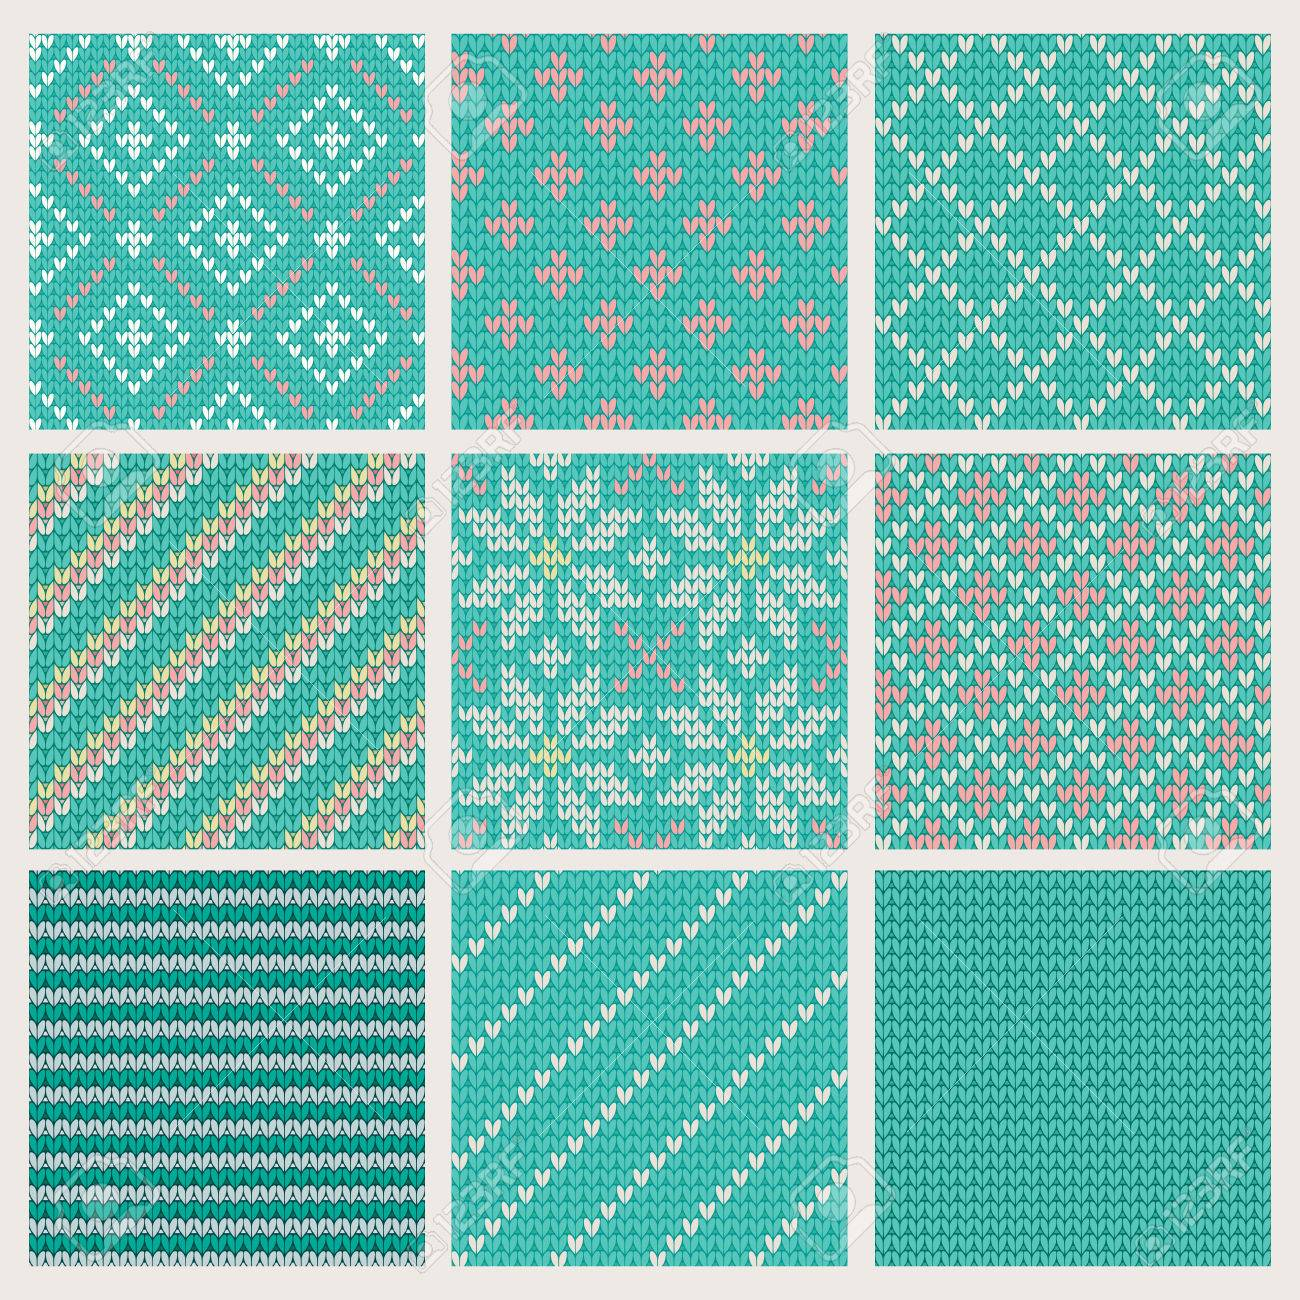 Set of Seamless Knitting Patterns  Vector illustration